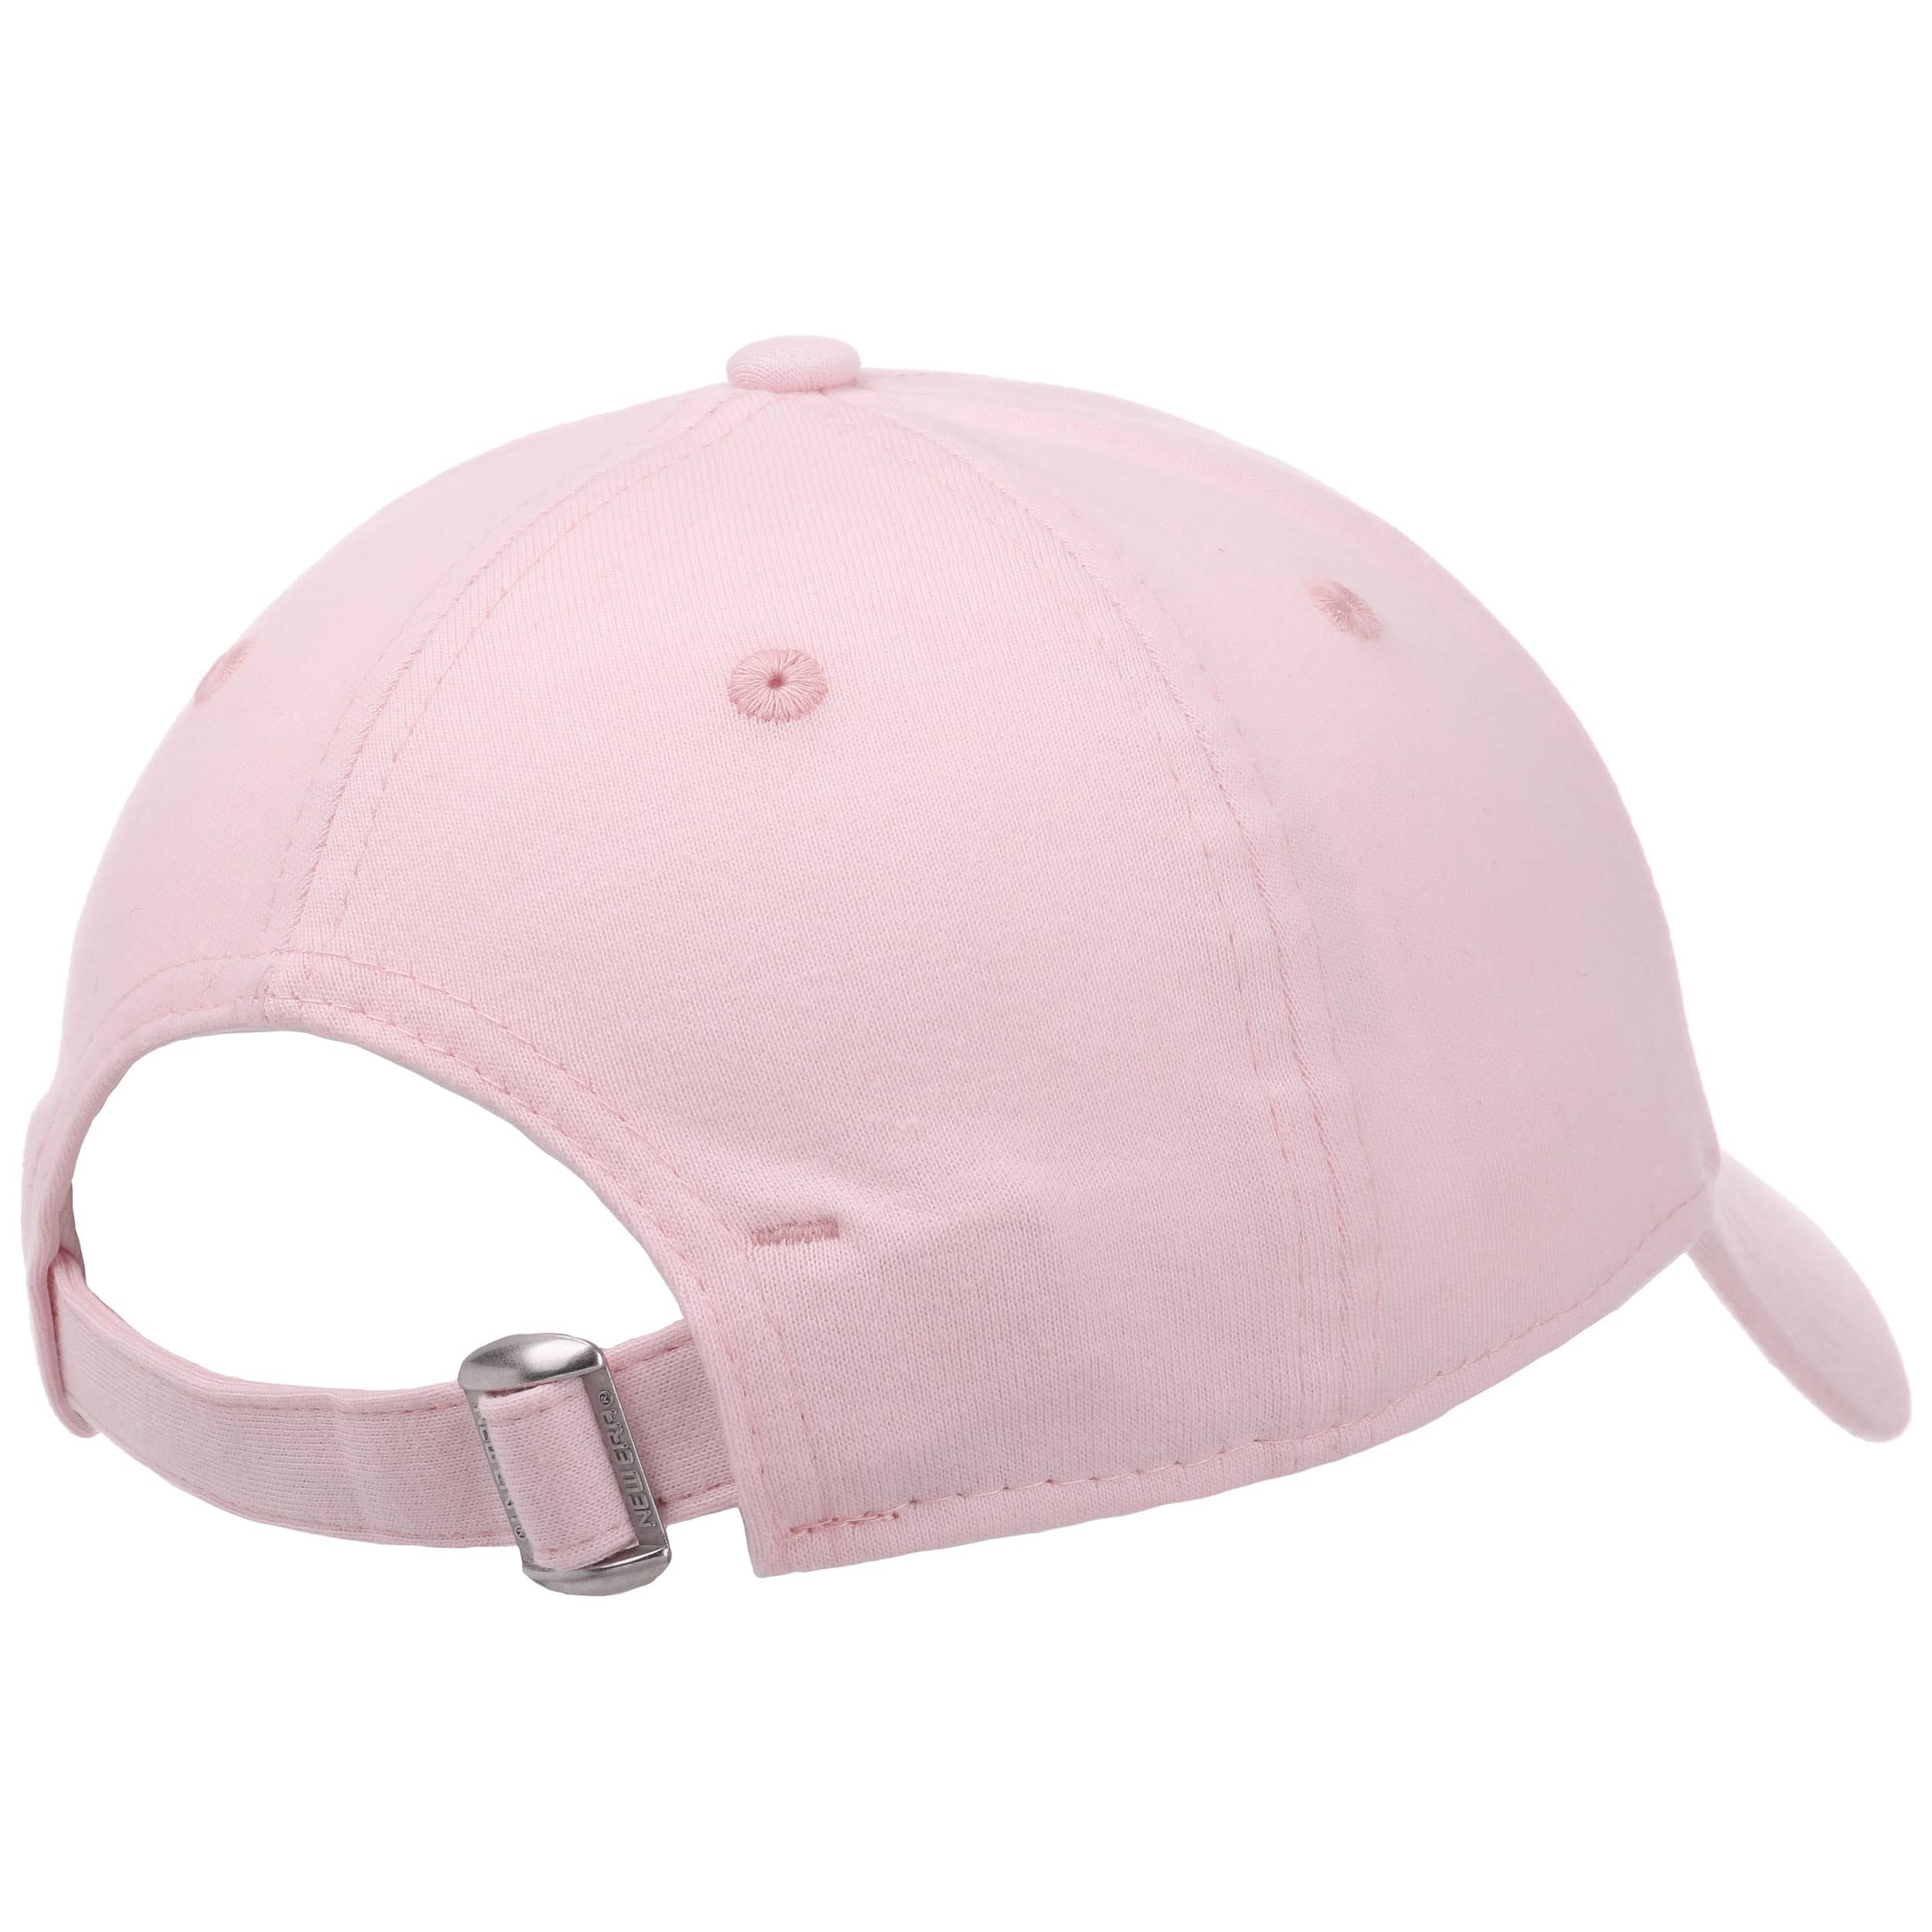 6685194cda0 ... 9Forty Jersey Dodgers Cap by New Era - pink 3 ...